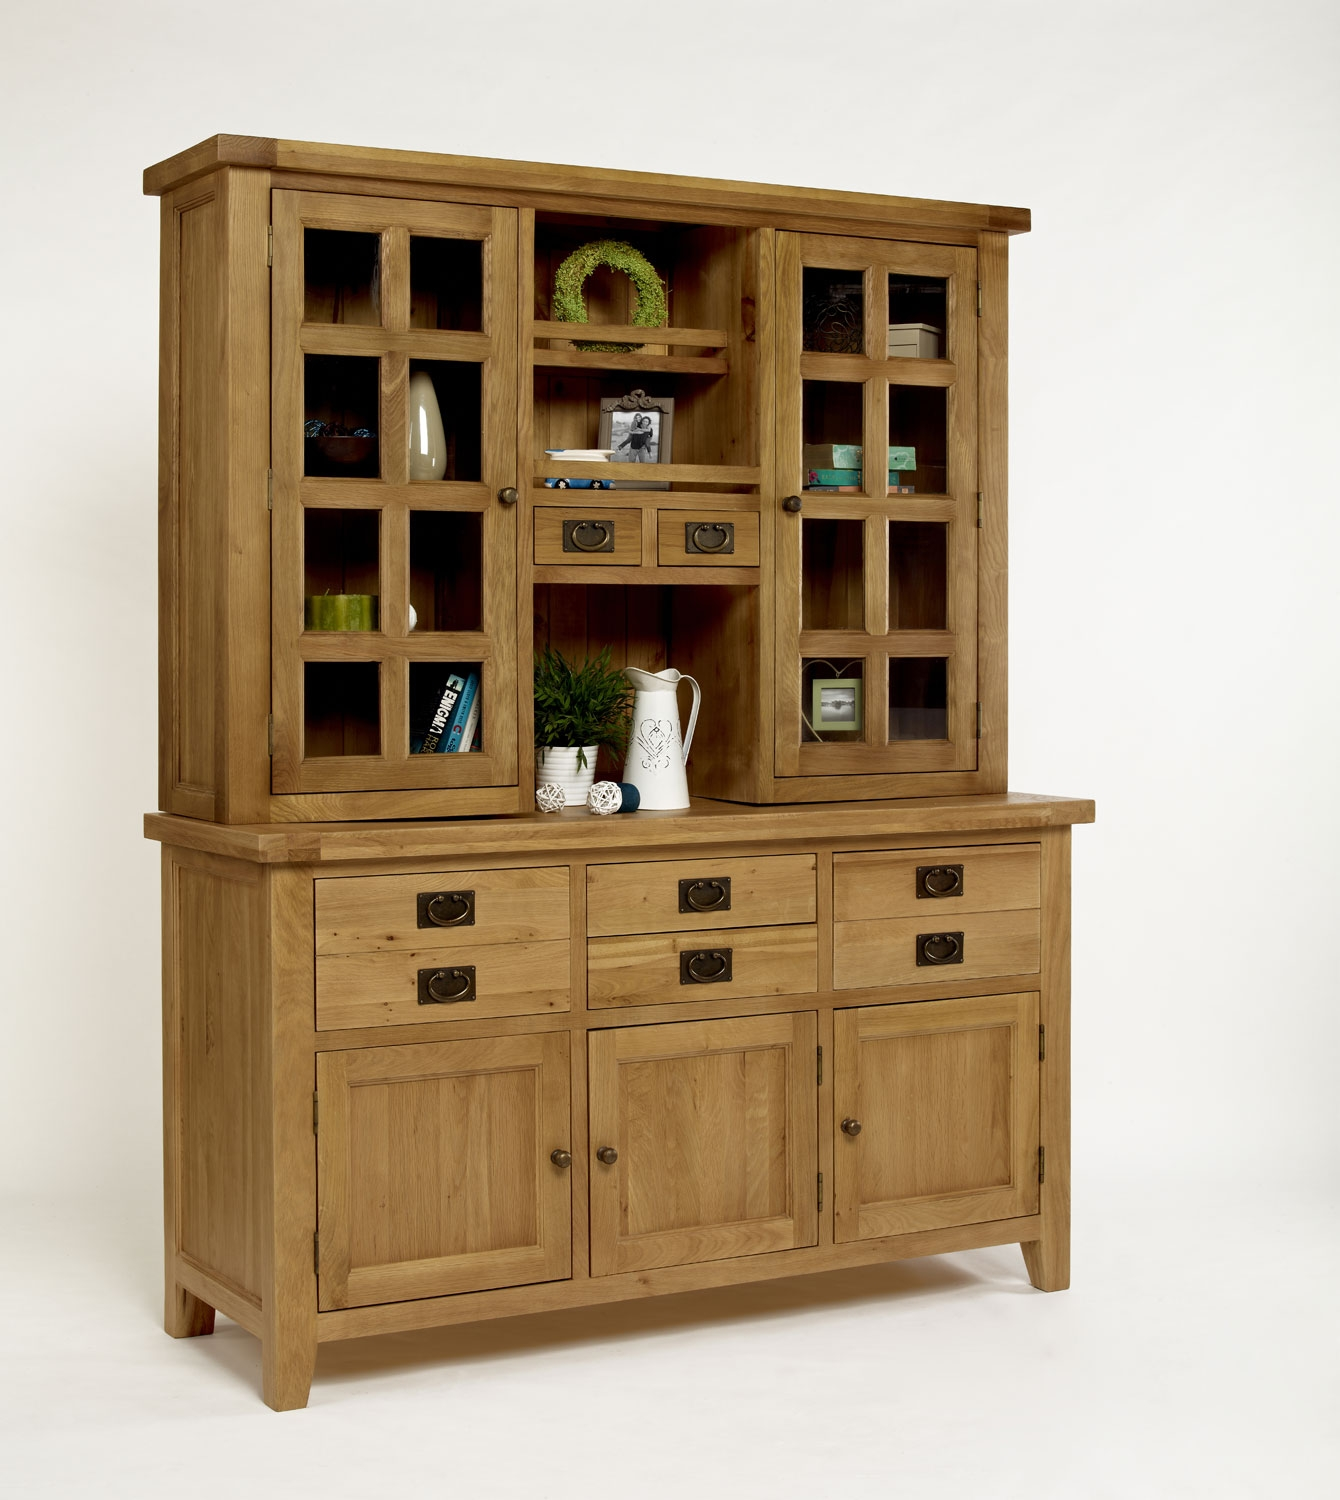 hutch with throughout ideas dining of furniture sideboards extraodinary sideboard